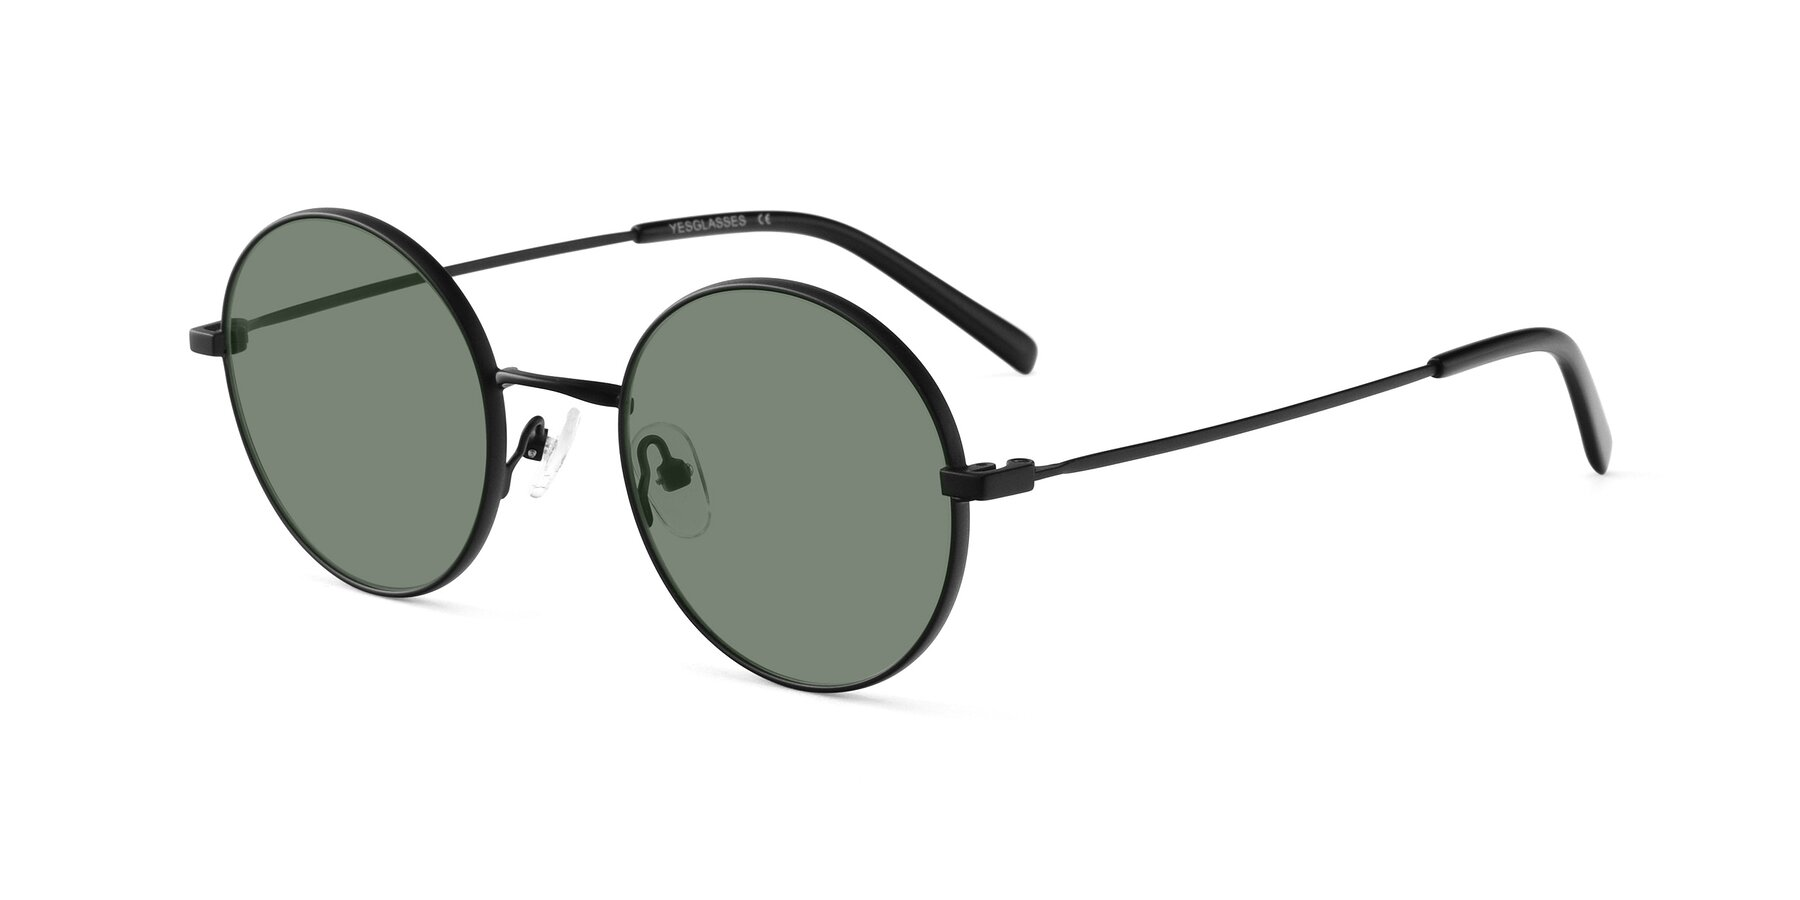 Angle of Moore in Black with Medium Green Tinted Lenses